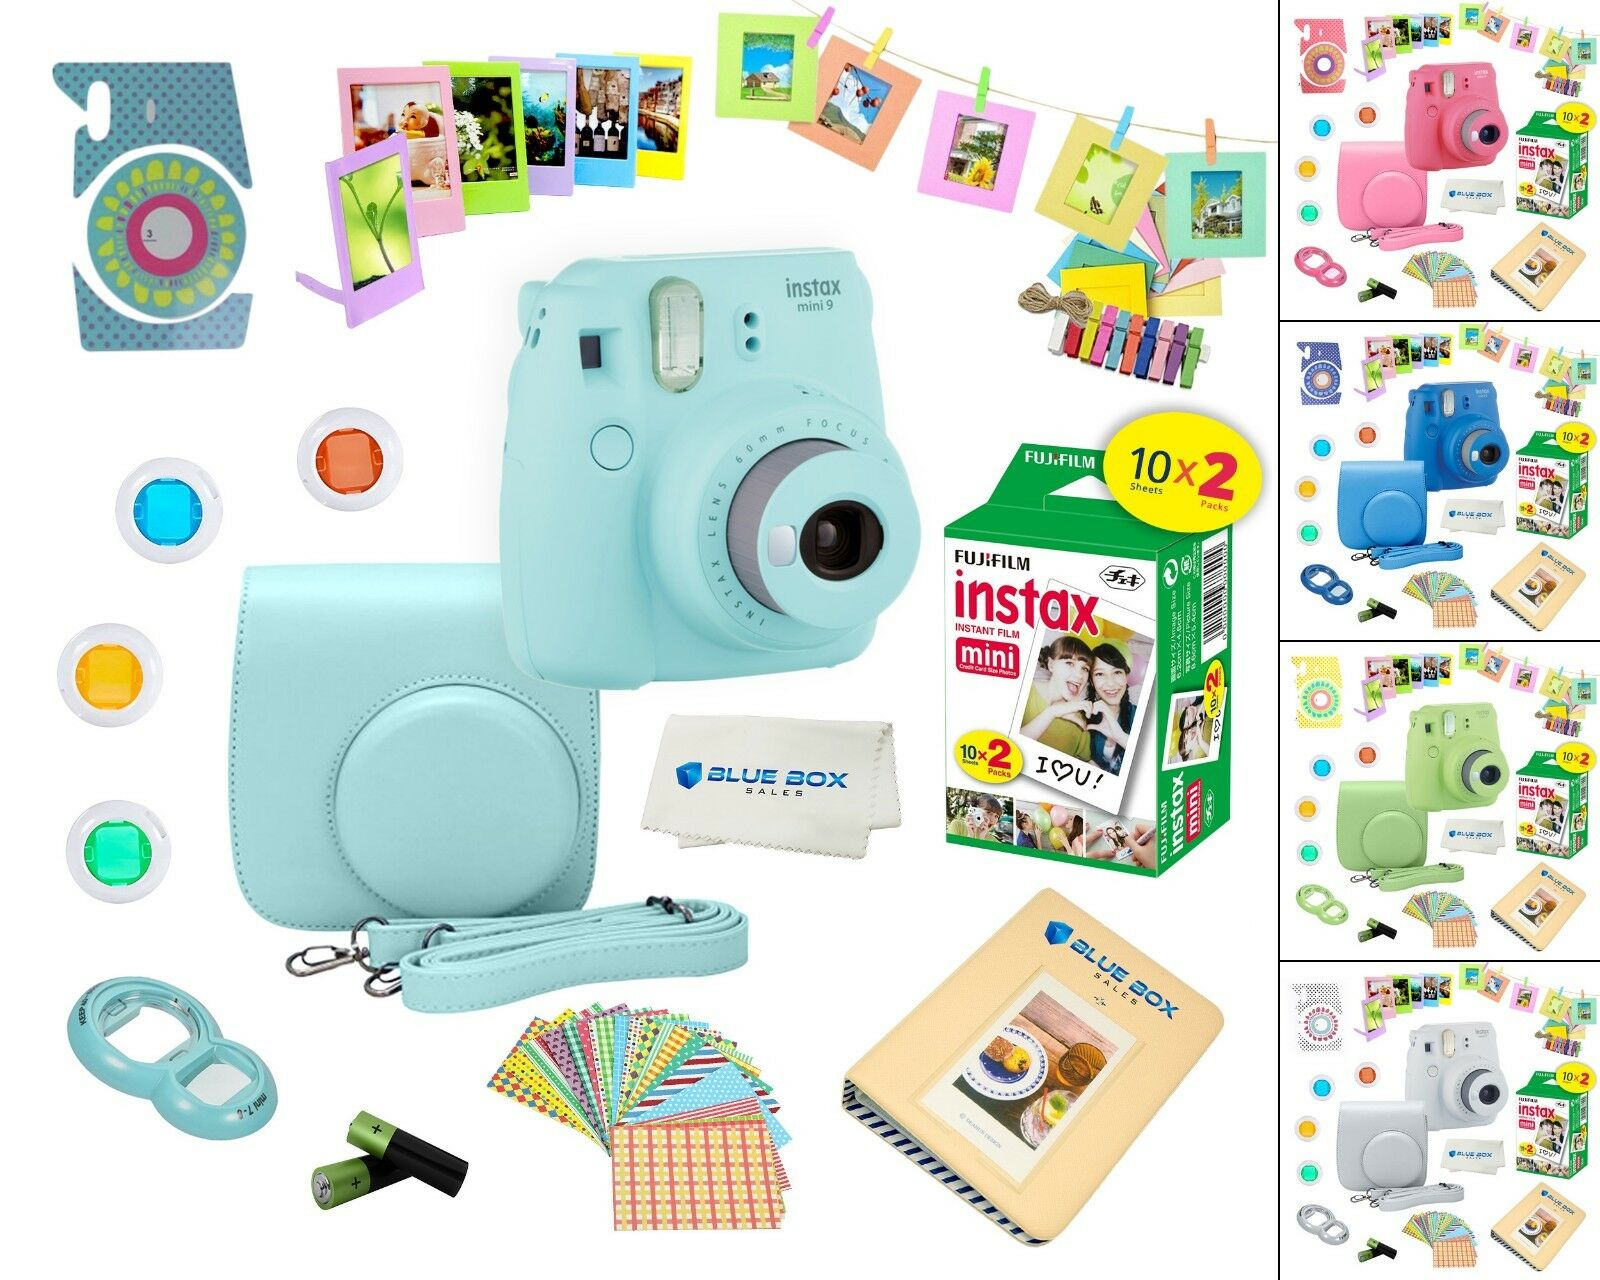 Fujifilm Instax Mini 9 Instant Camera 20 Fuji Film Sheets pl